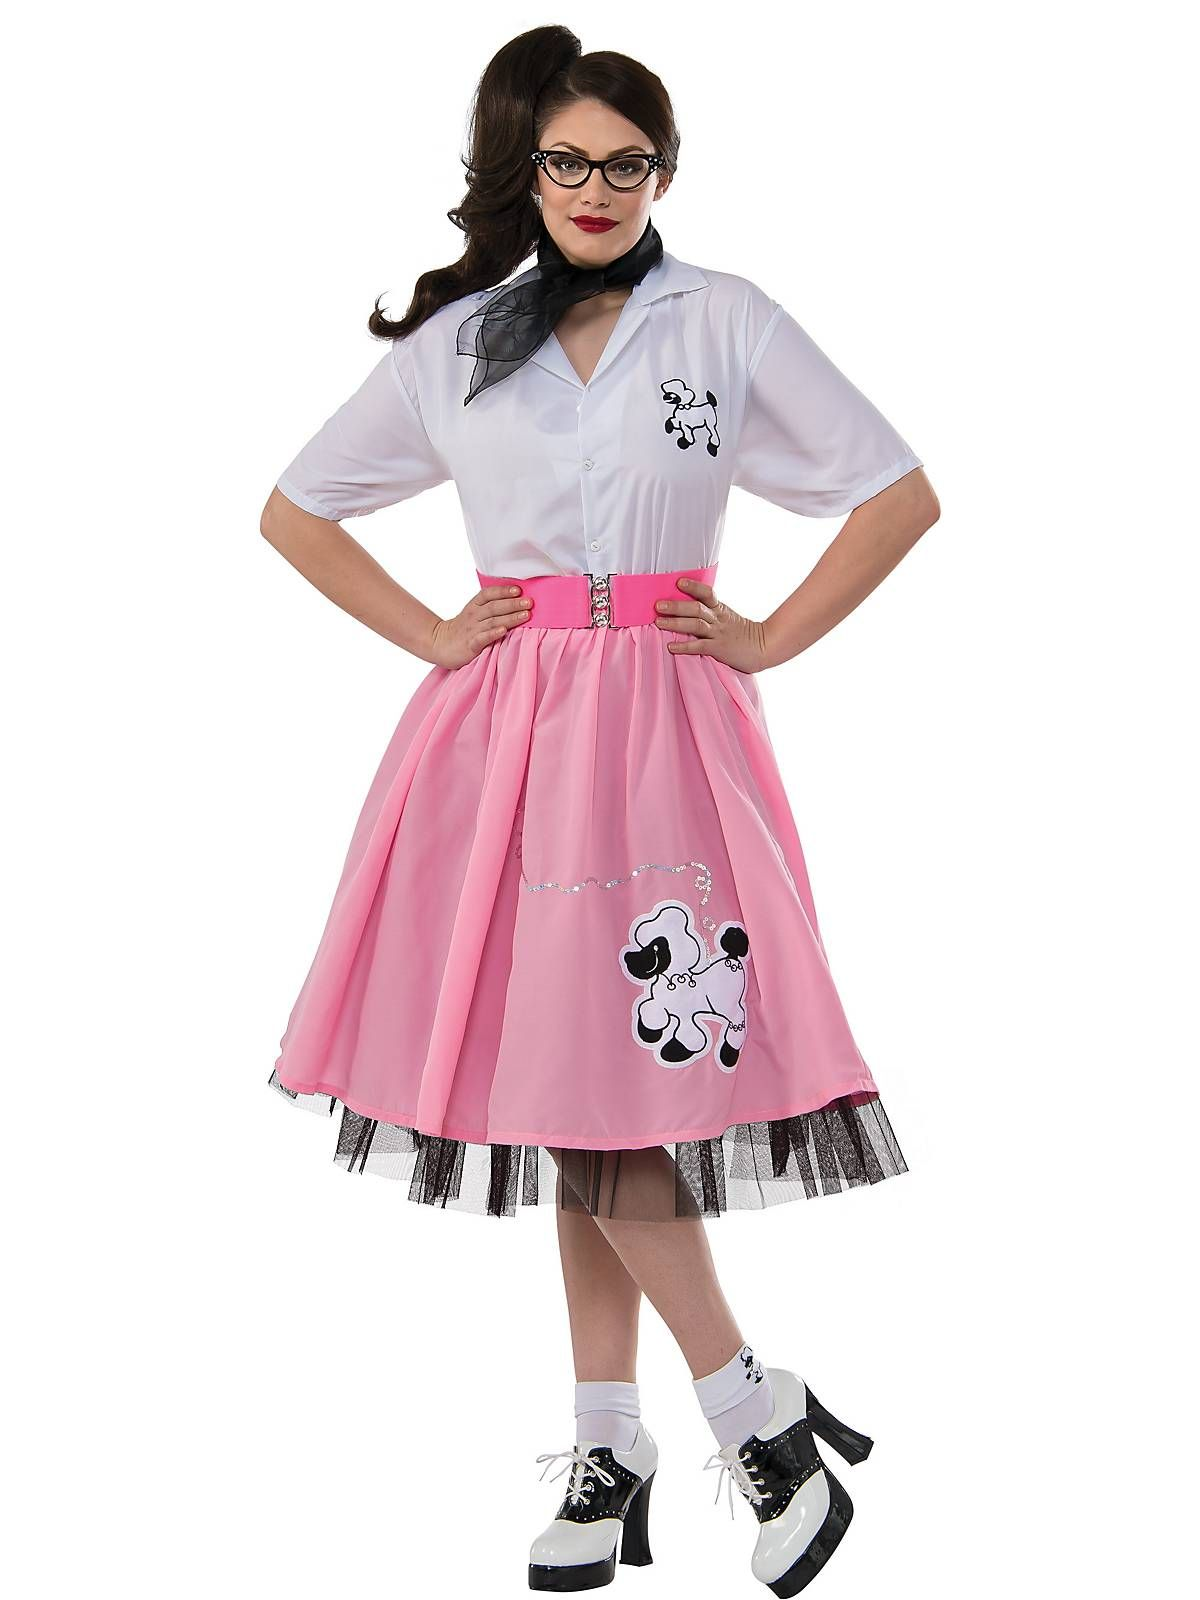 4ac4ddb4139da Black and White 50 s Poodle Outfit - Store-bought Halloween Costumes - Women